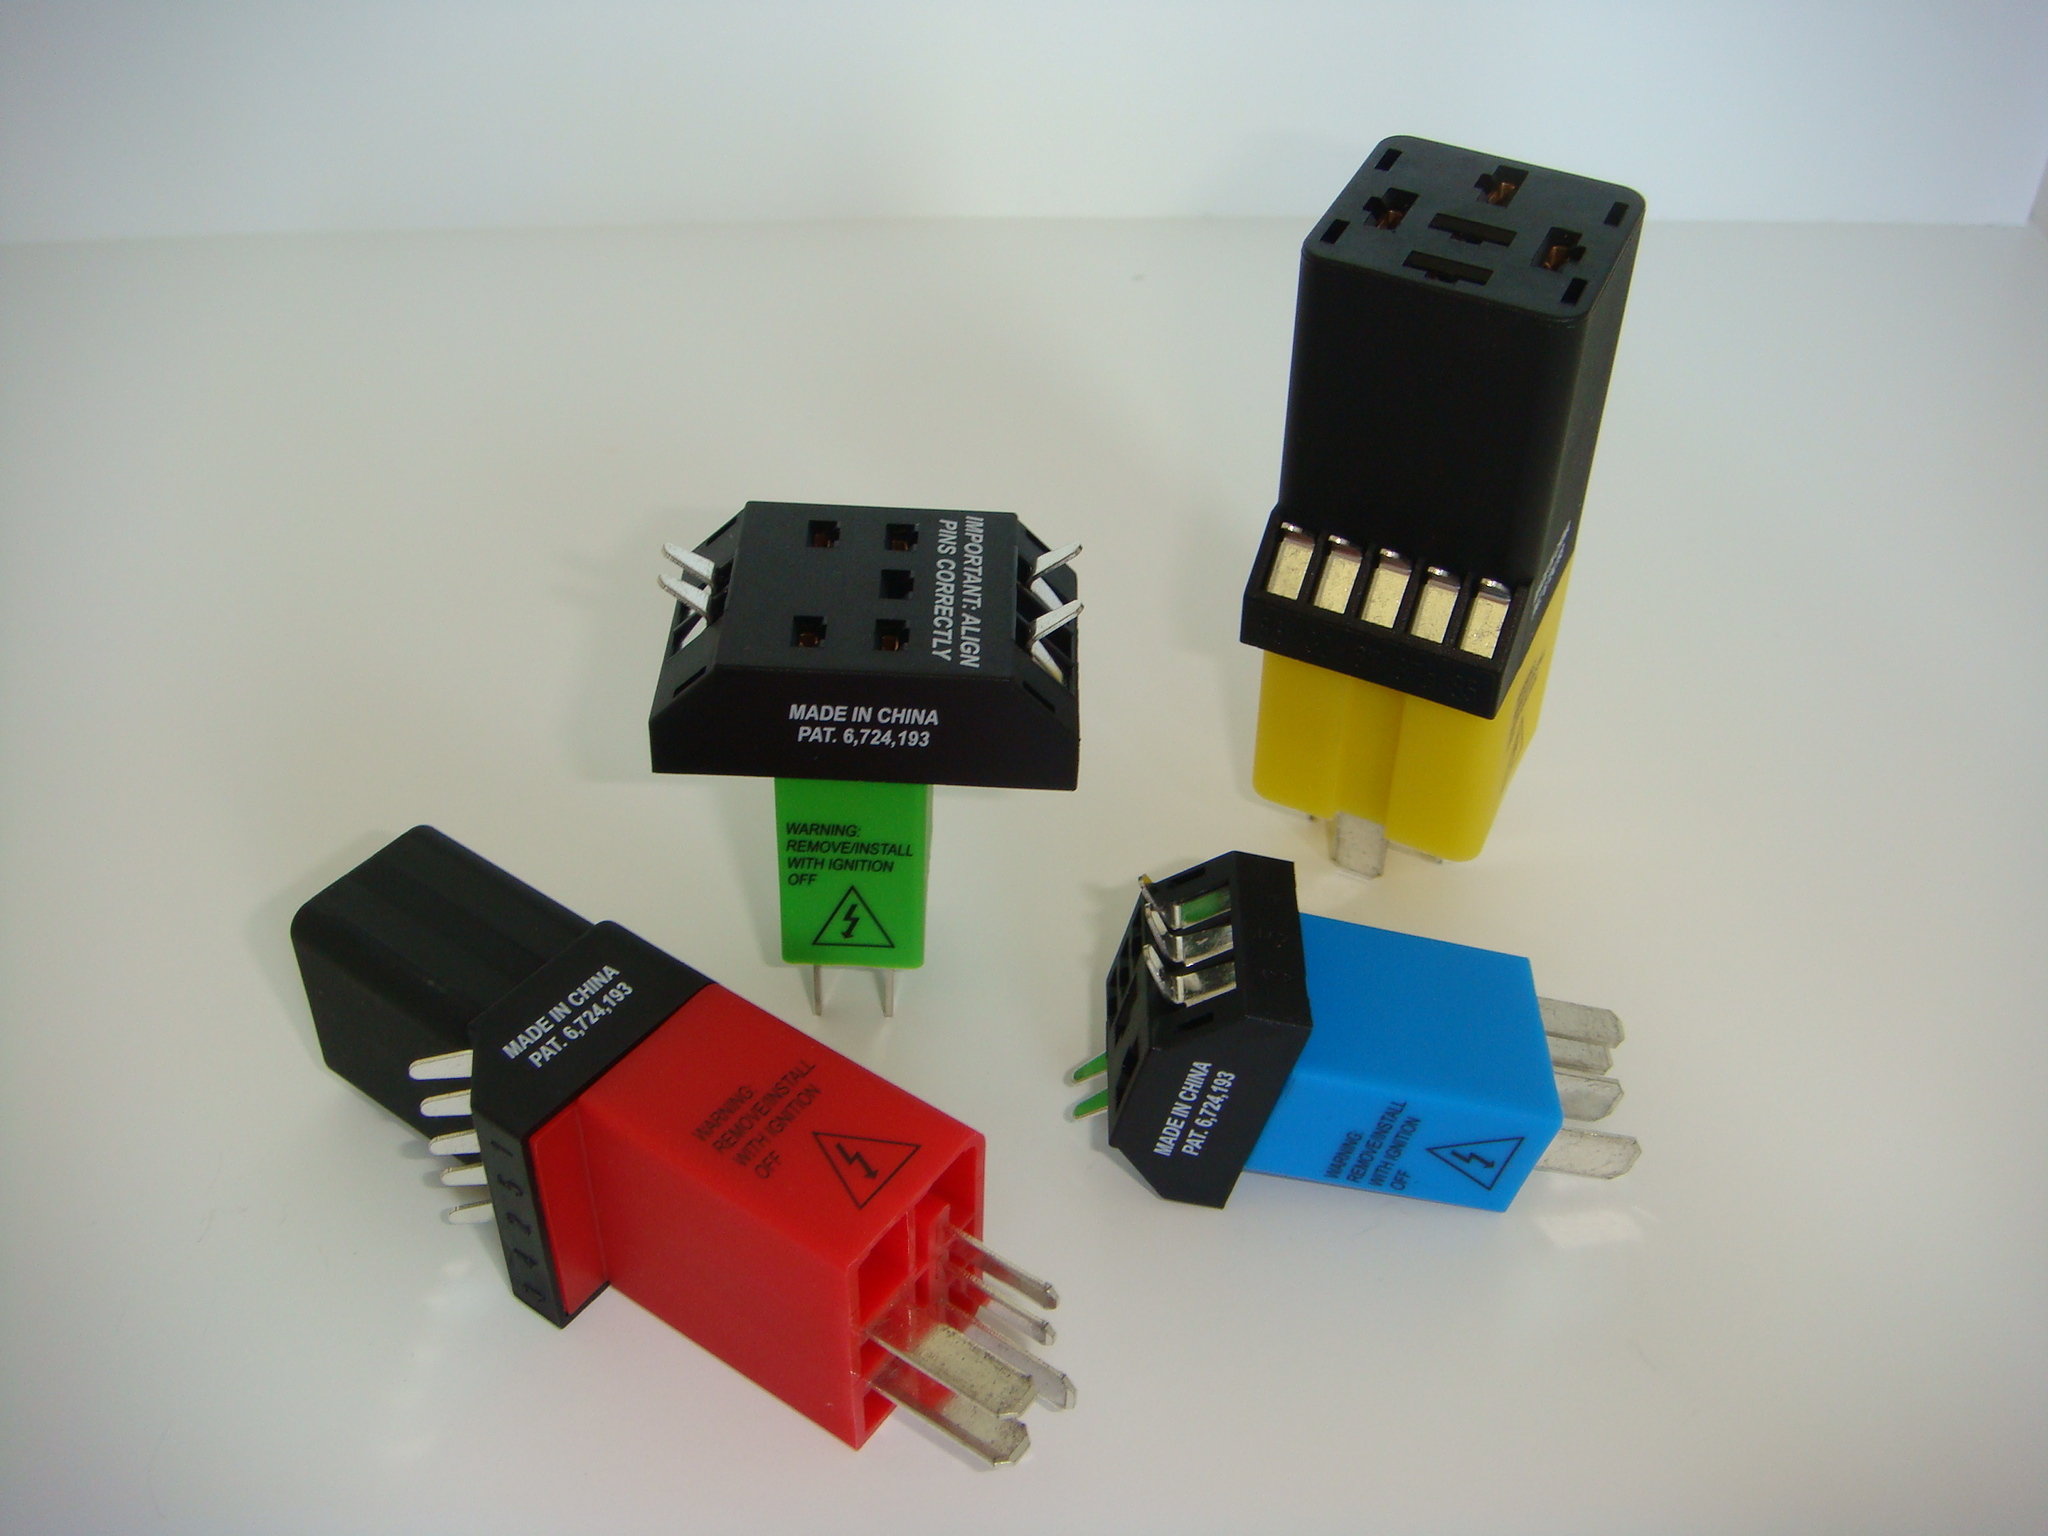 Diagram E E Urd Works With Lisle To Manufacture Automotive Relay Test Jumper Kits By Combining Plastic